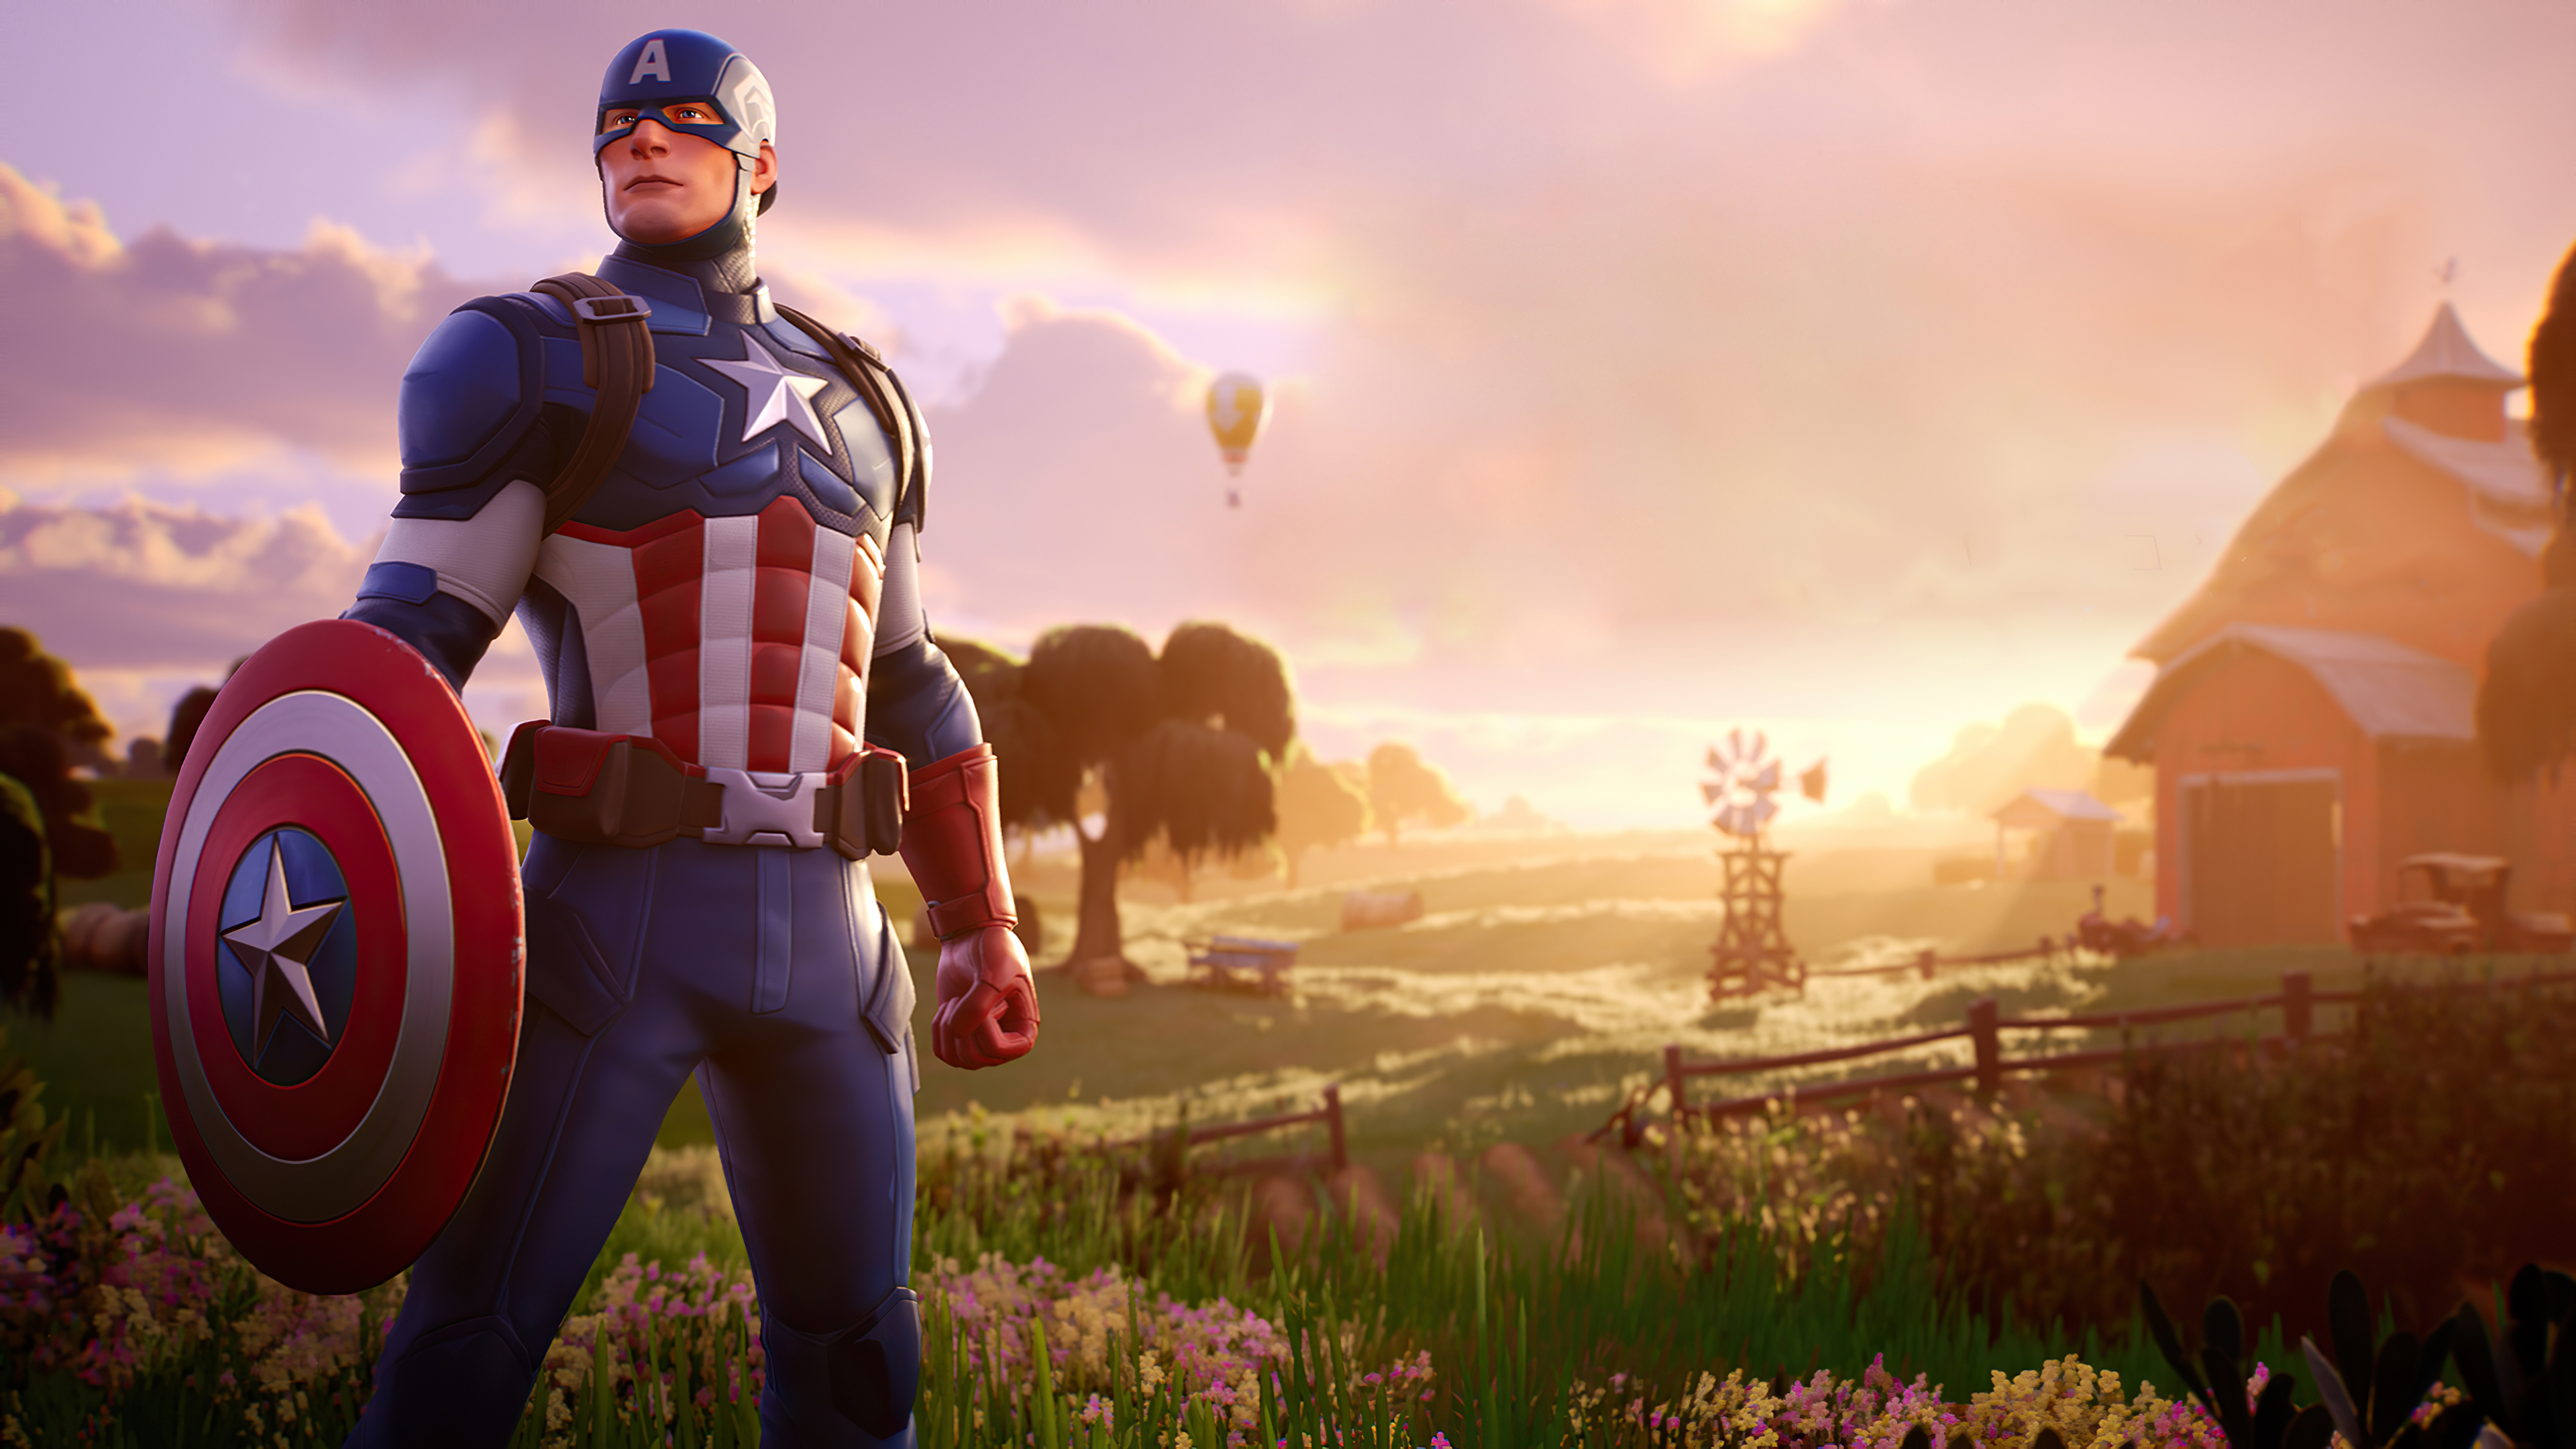 Captain America Fortnite 4k Hd Games 4k Wallpapers Images Backgrounds Photos And Pictures